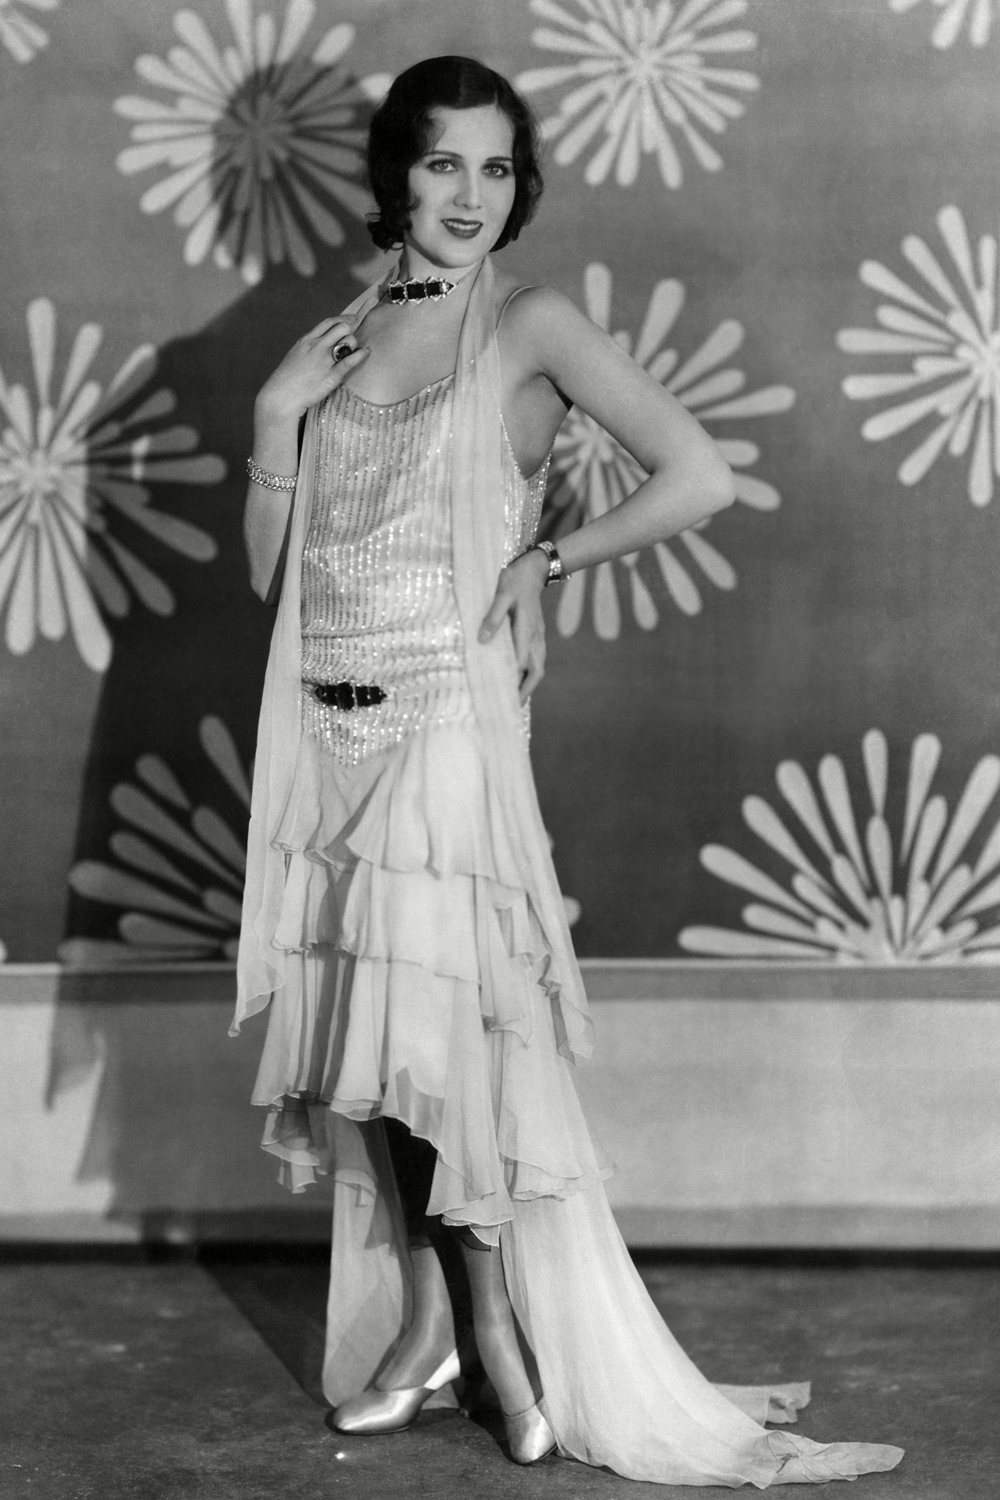 Fay wray - actress and flapper girl